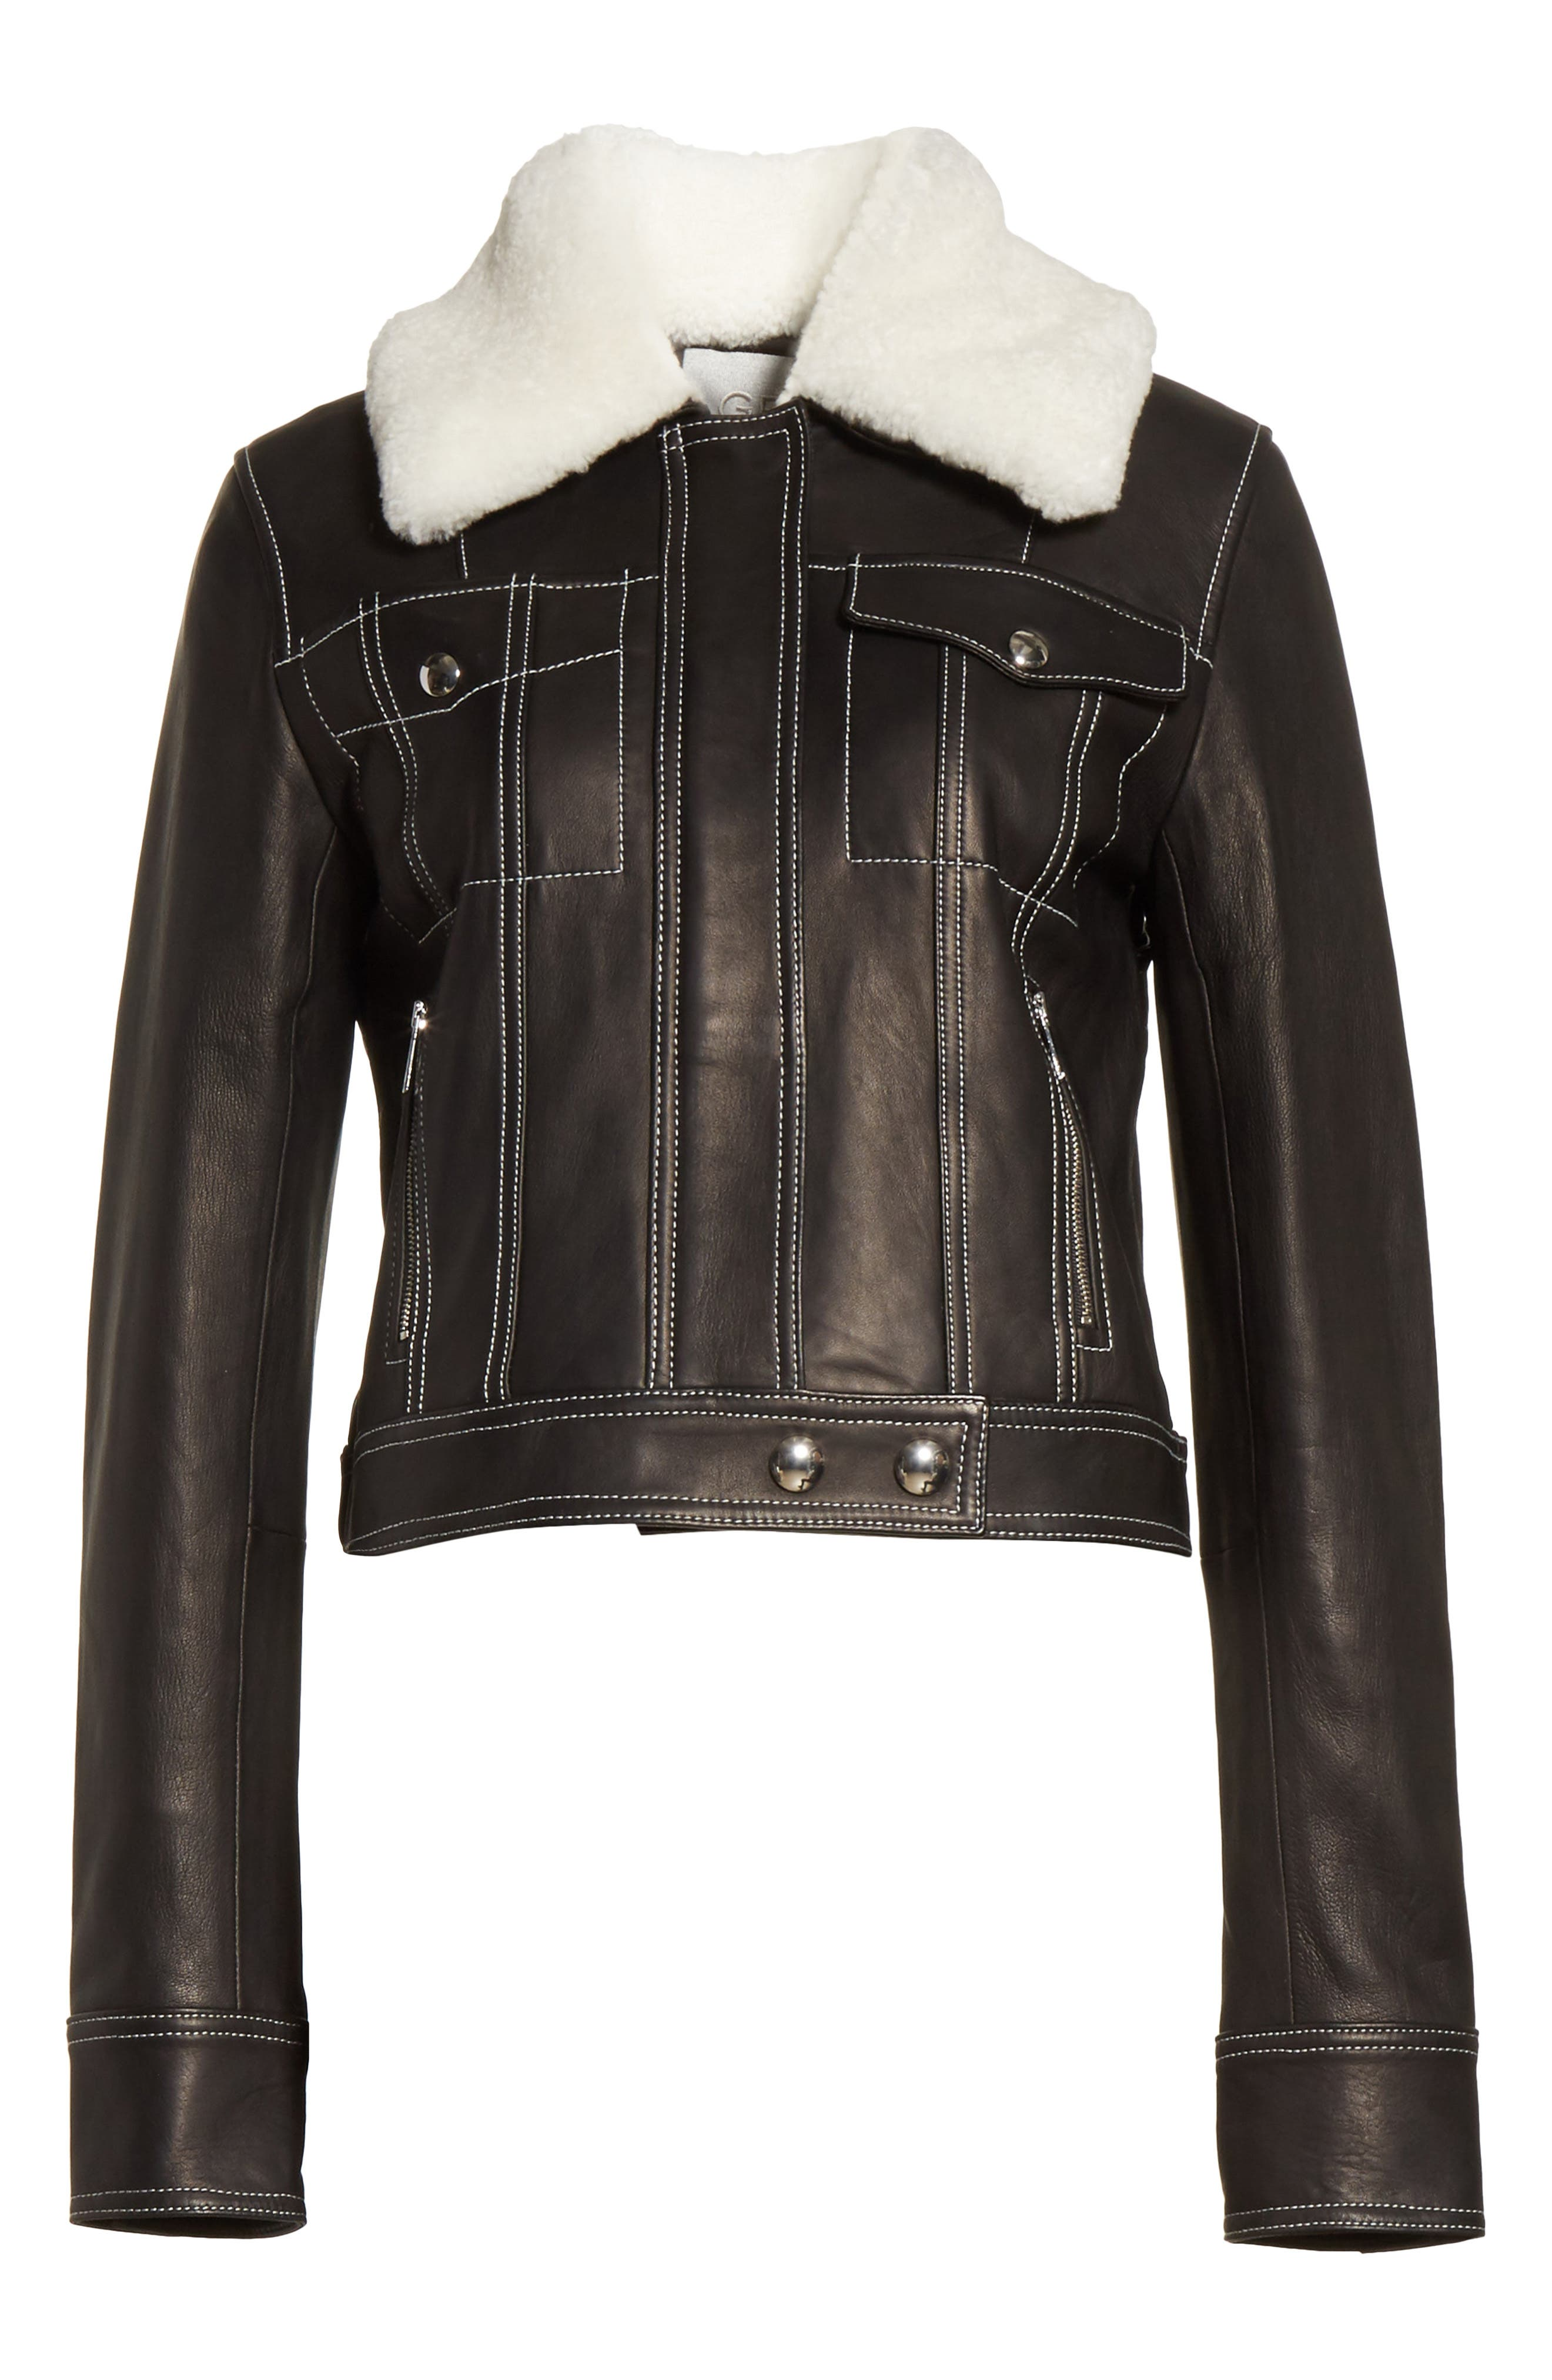 GREY Jason Wu Shrunken Leather Jacket with Removable Genuine Shearling Collar,                             Alternate thumbnail 5, color,                             009